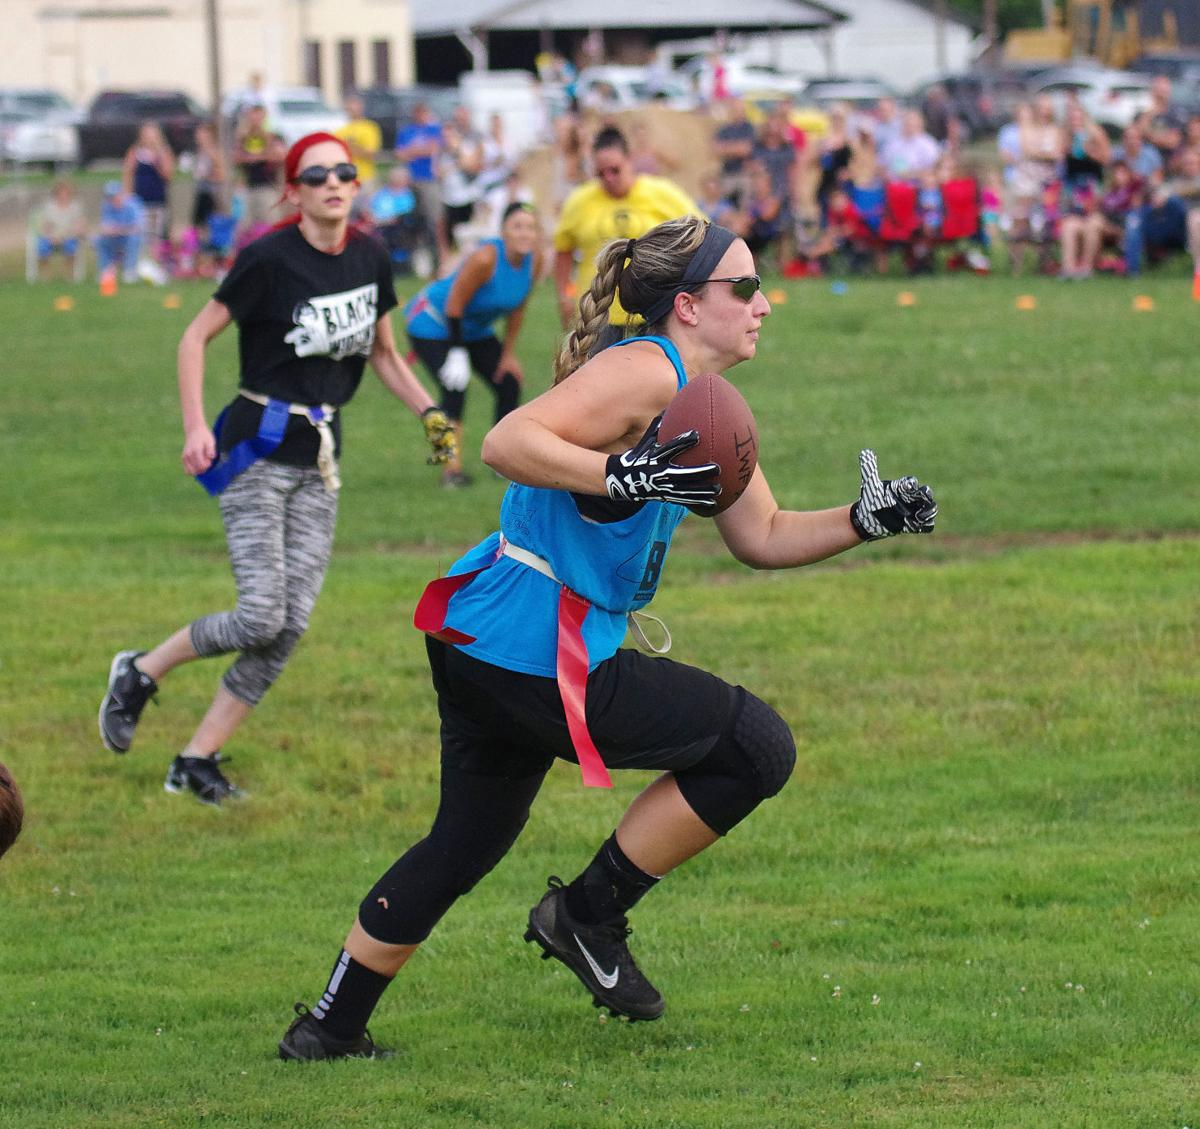 Champions League Womens: Ballers Claim Indiana Women's Flag Football League Title